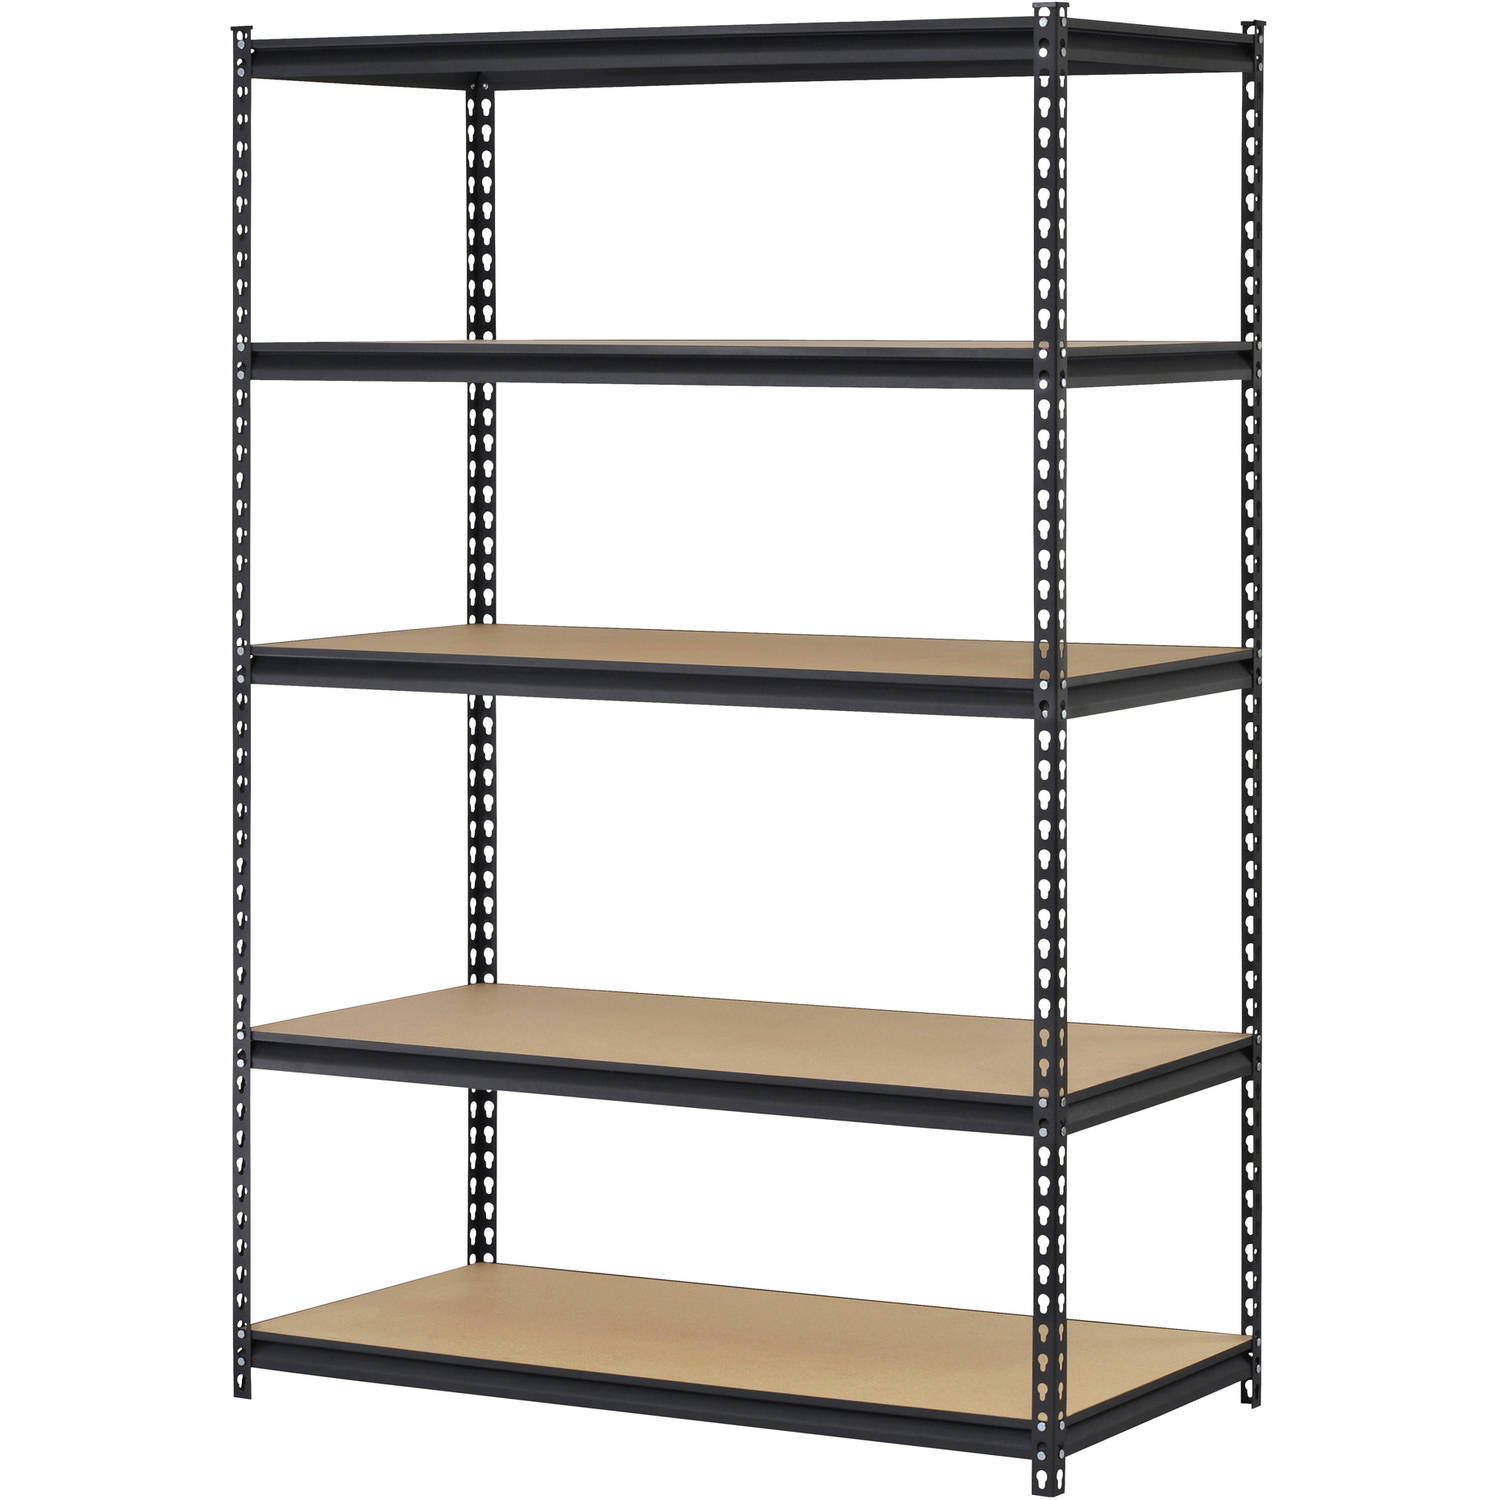 Yaheetech 5 Tier Storage Rack Heavy Duty Shelf Steel Shelving Unit ...